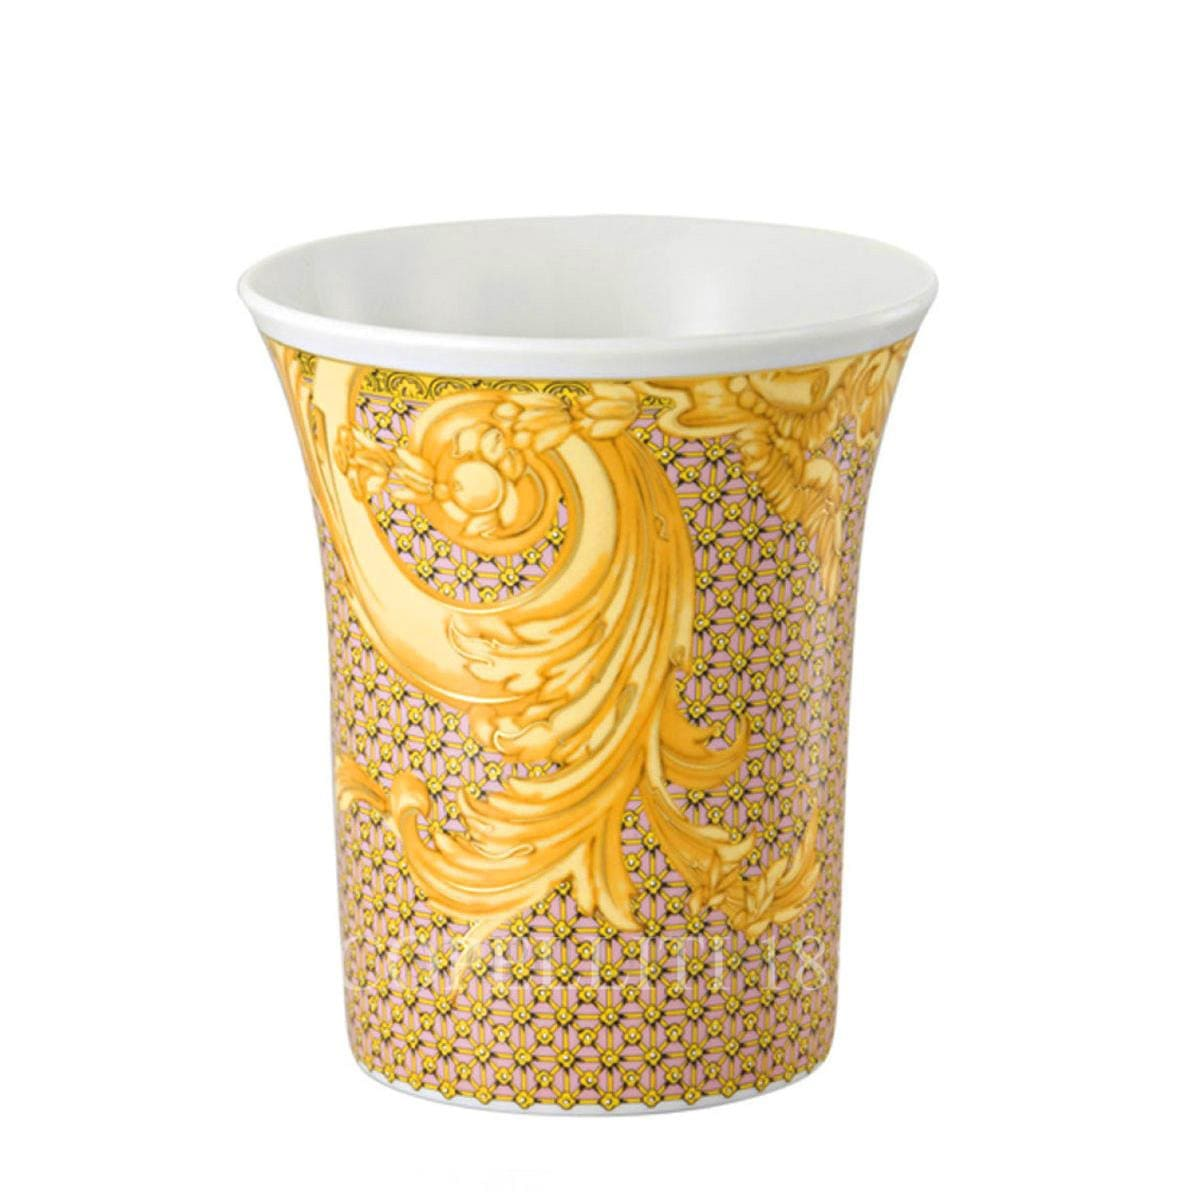 versace italian design les reves byzantins vase small